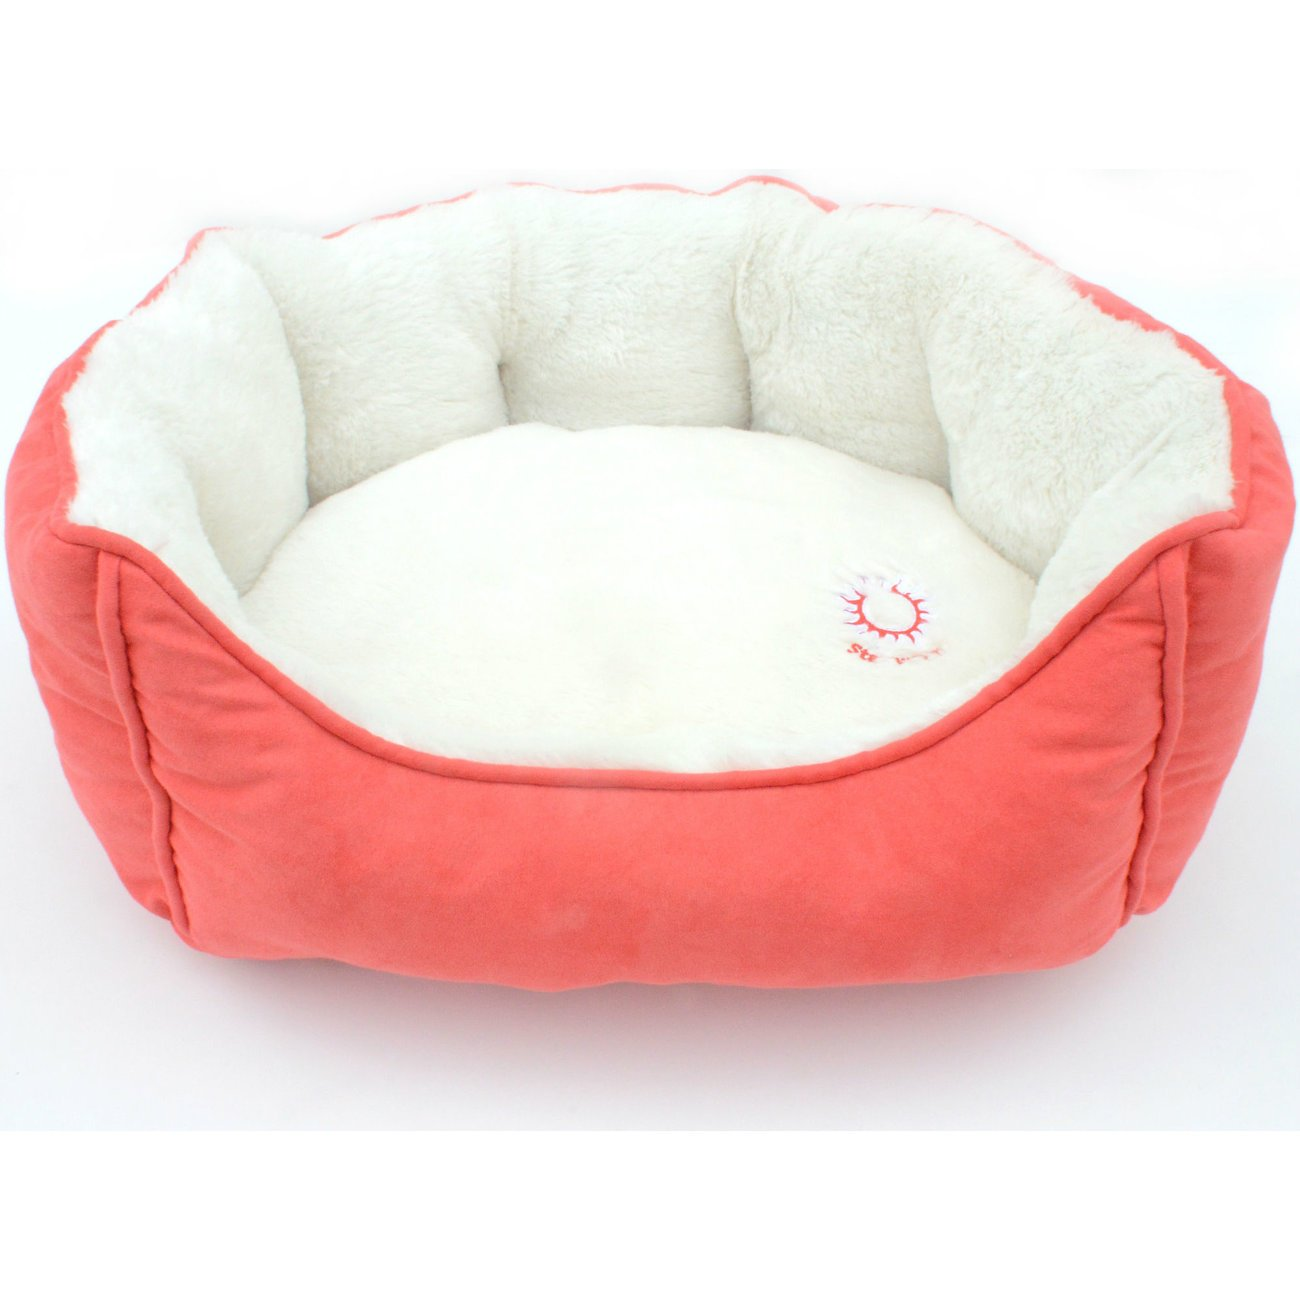 Thermoswitch Hundebett ANDROS